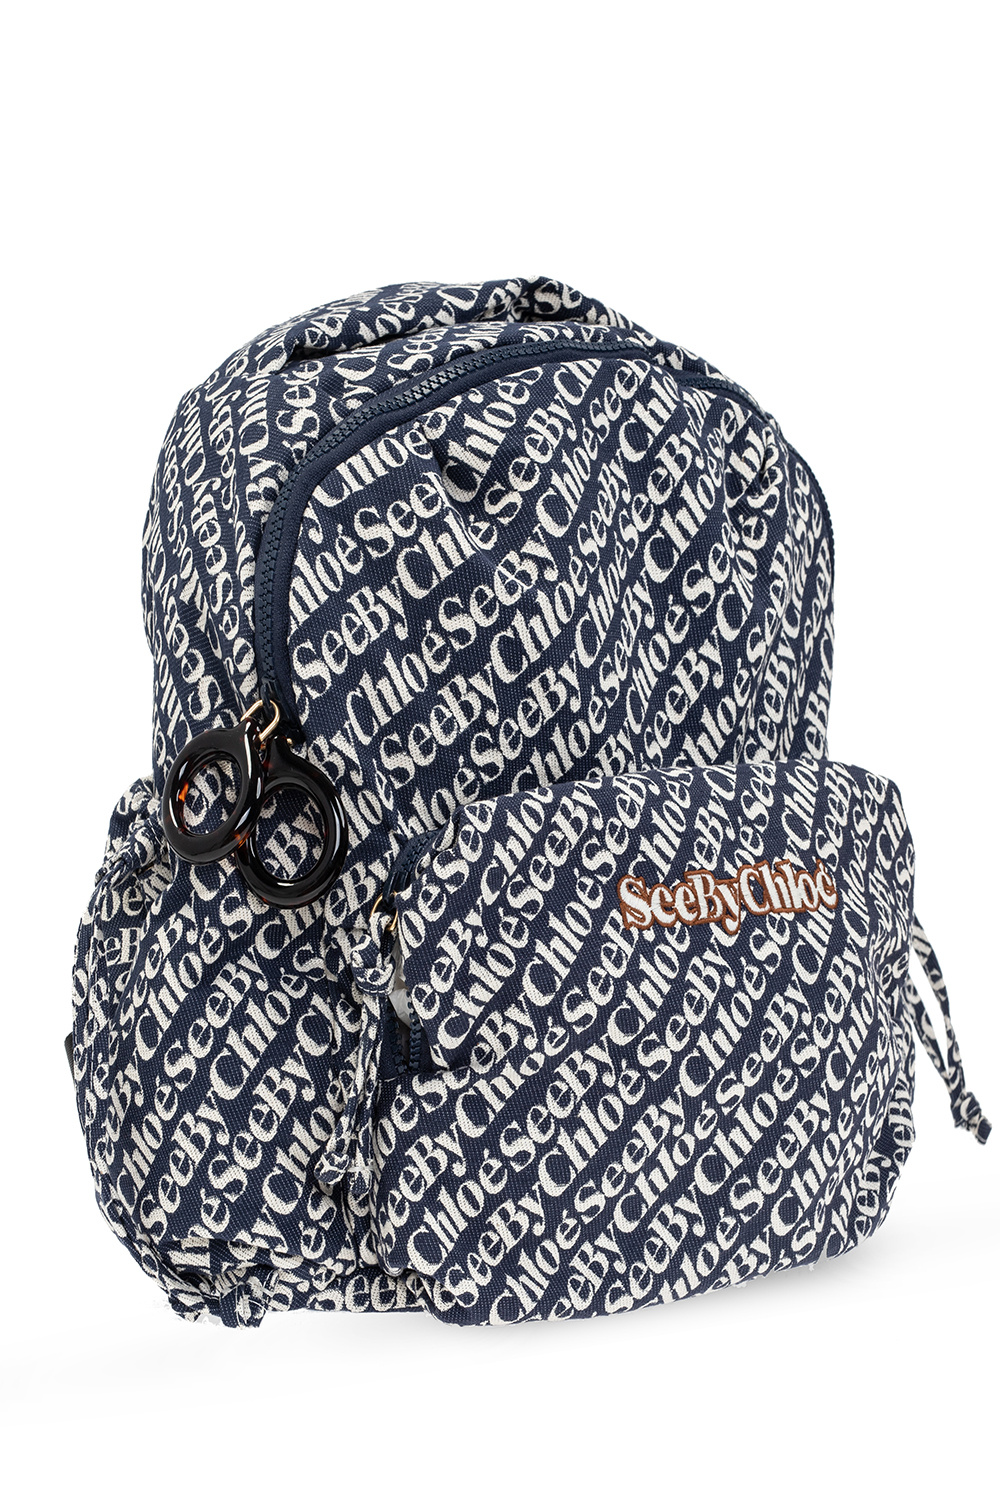 See By Chloe 'Tilly Sbc' backpack